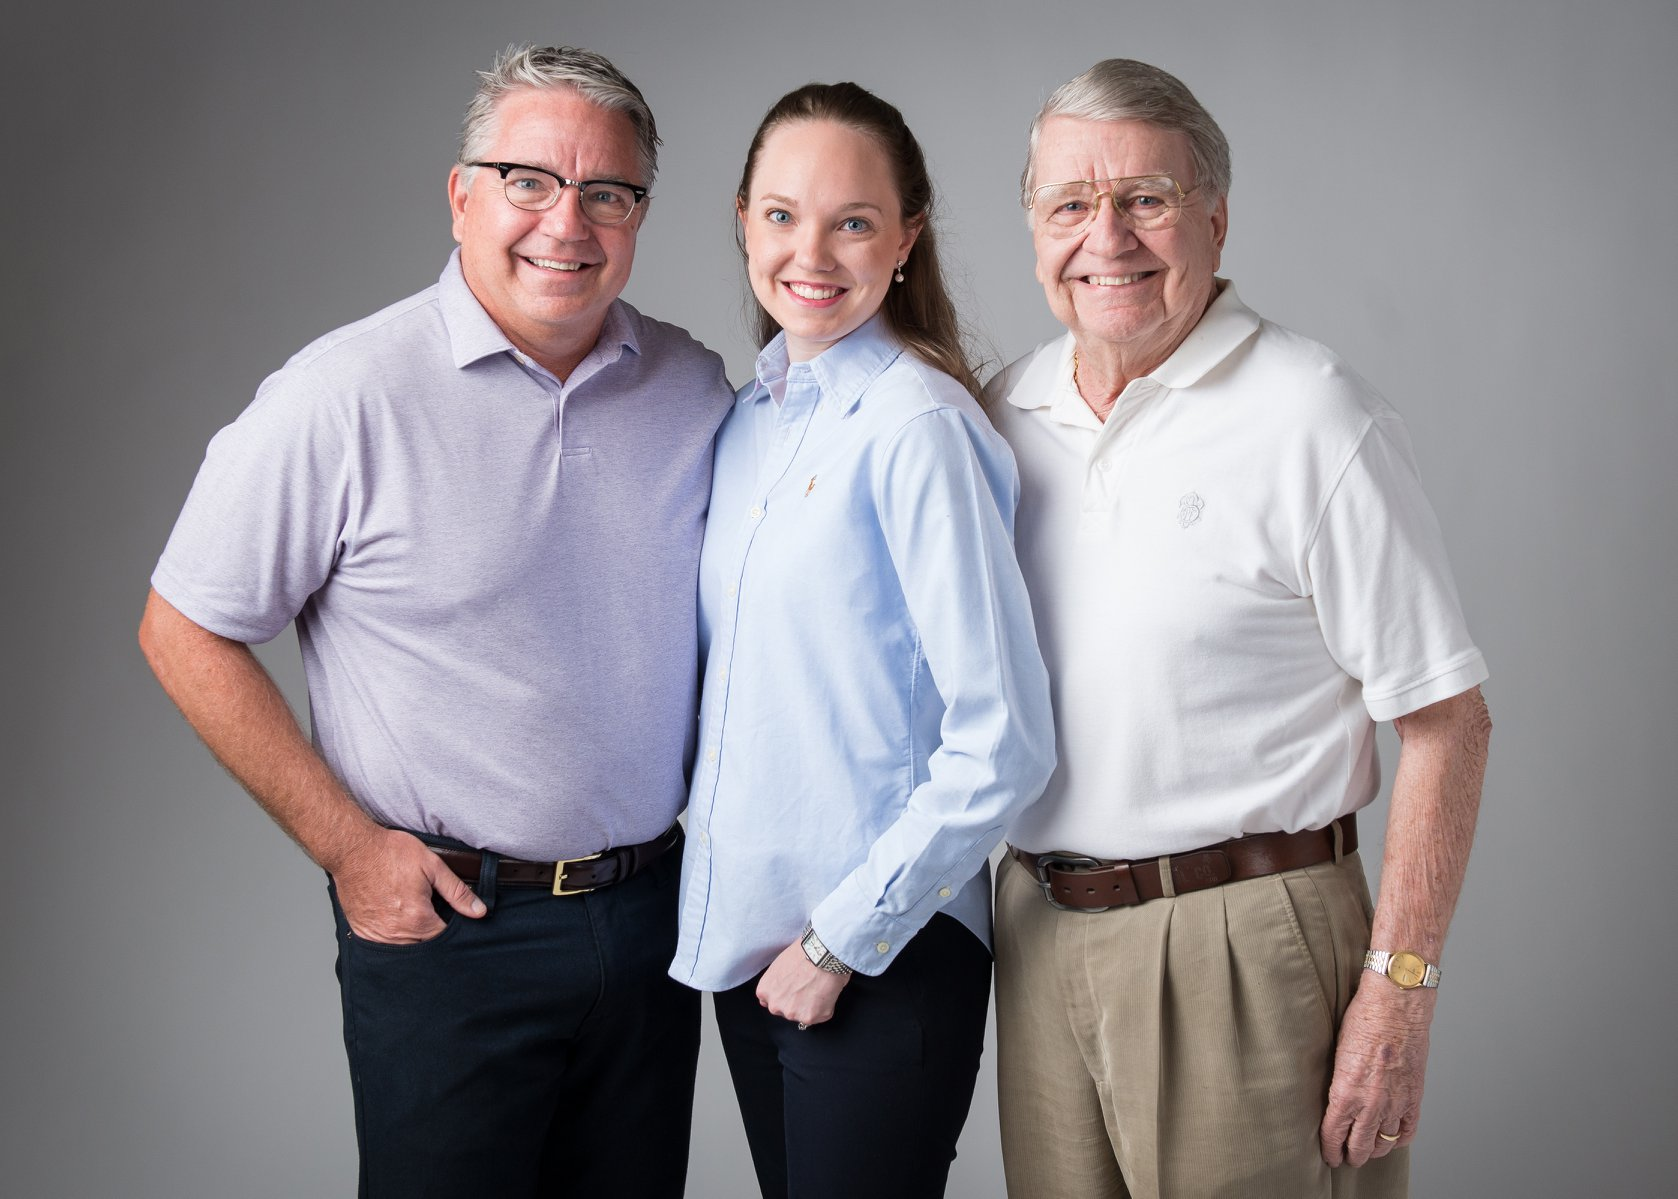 Three generations: Dr. Charles Stone, Dr. Brittany Keck-Flory, and Dr. Howard Stone